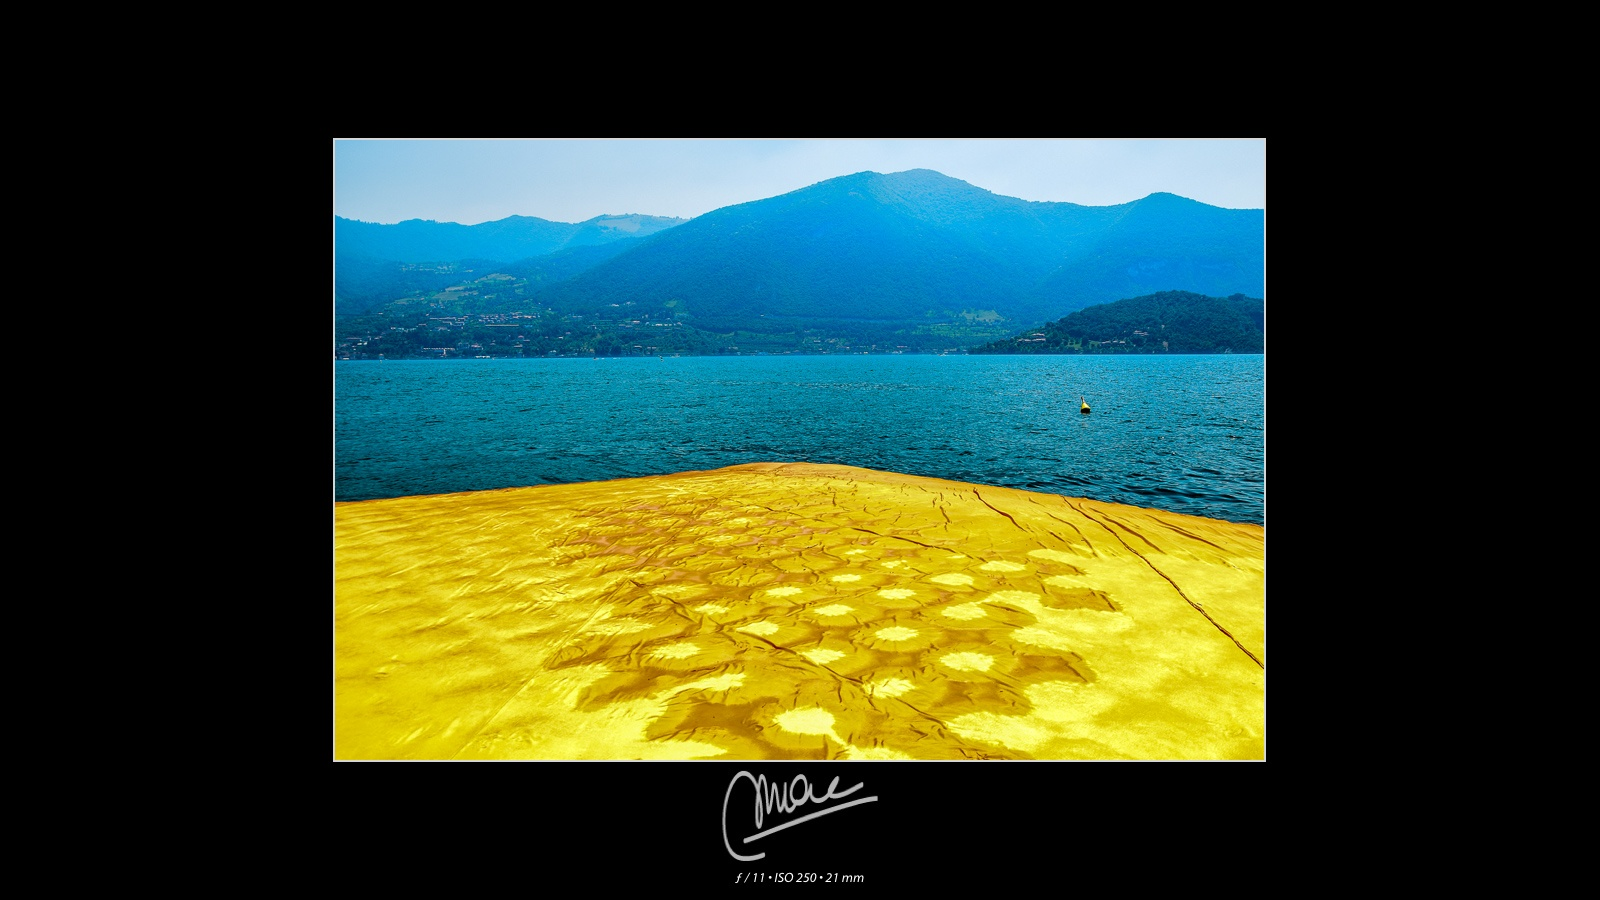 The Floating Piers #8 by Marco Andreazza